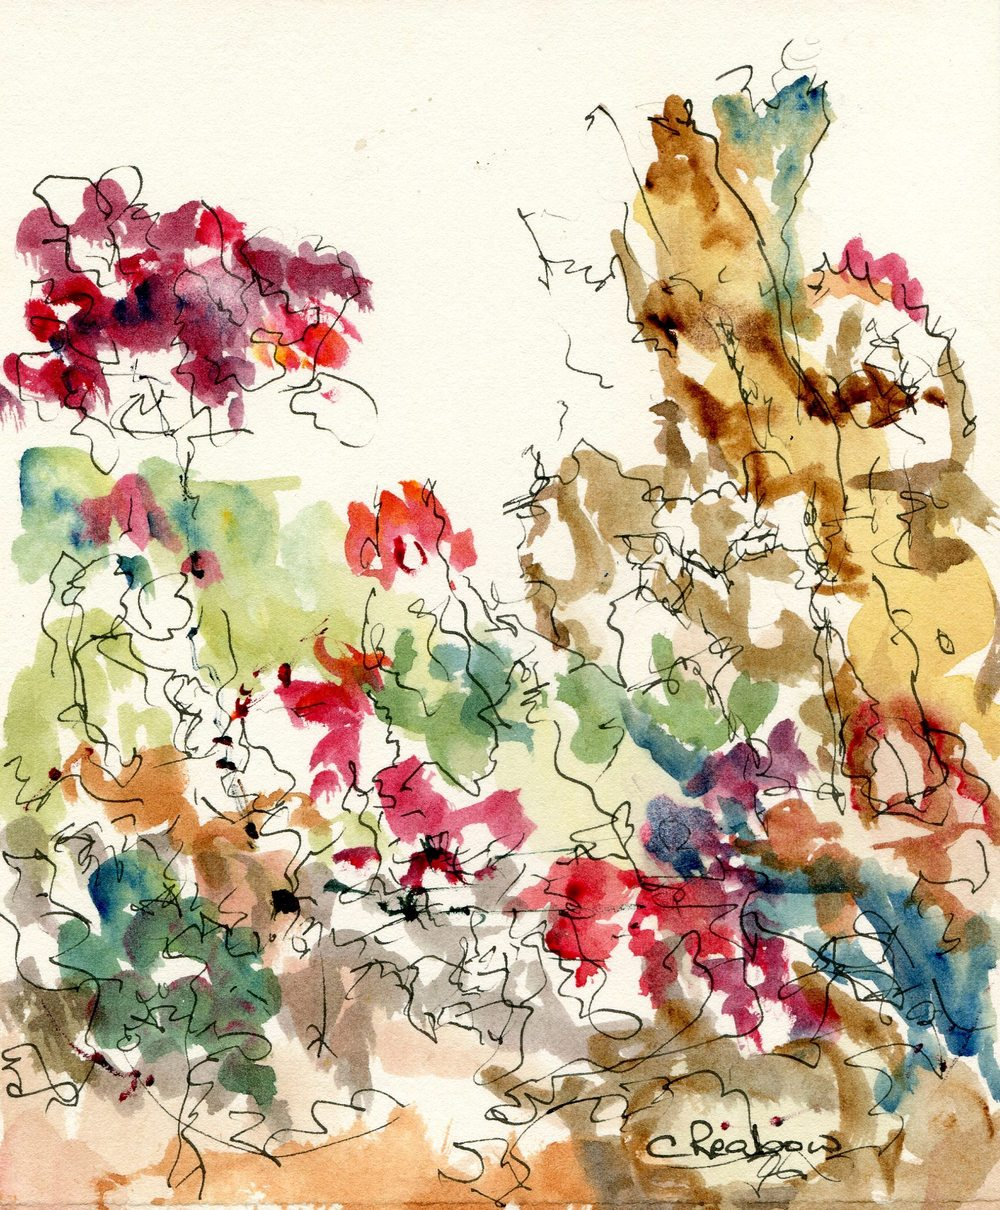 60c Reabow,Chris- Floral Study III, Watercolour and Ink.jpg